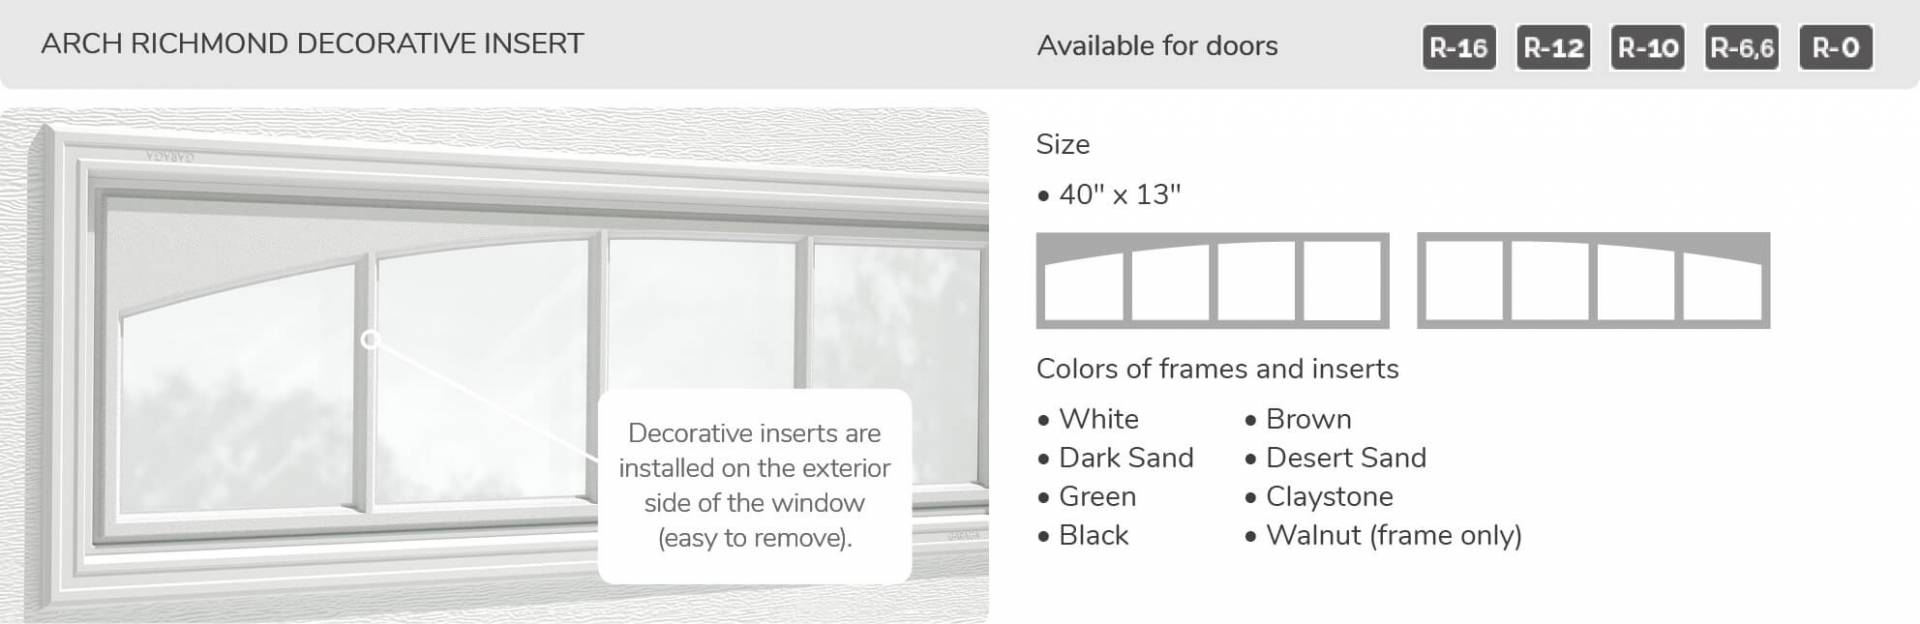 "Arch Richmond Decorative Insert, 40"" x 13"", available for doors R-16, R-12, R-10, R-6.6, R-0"